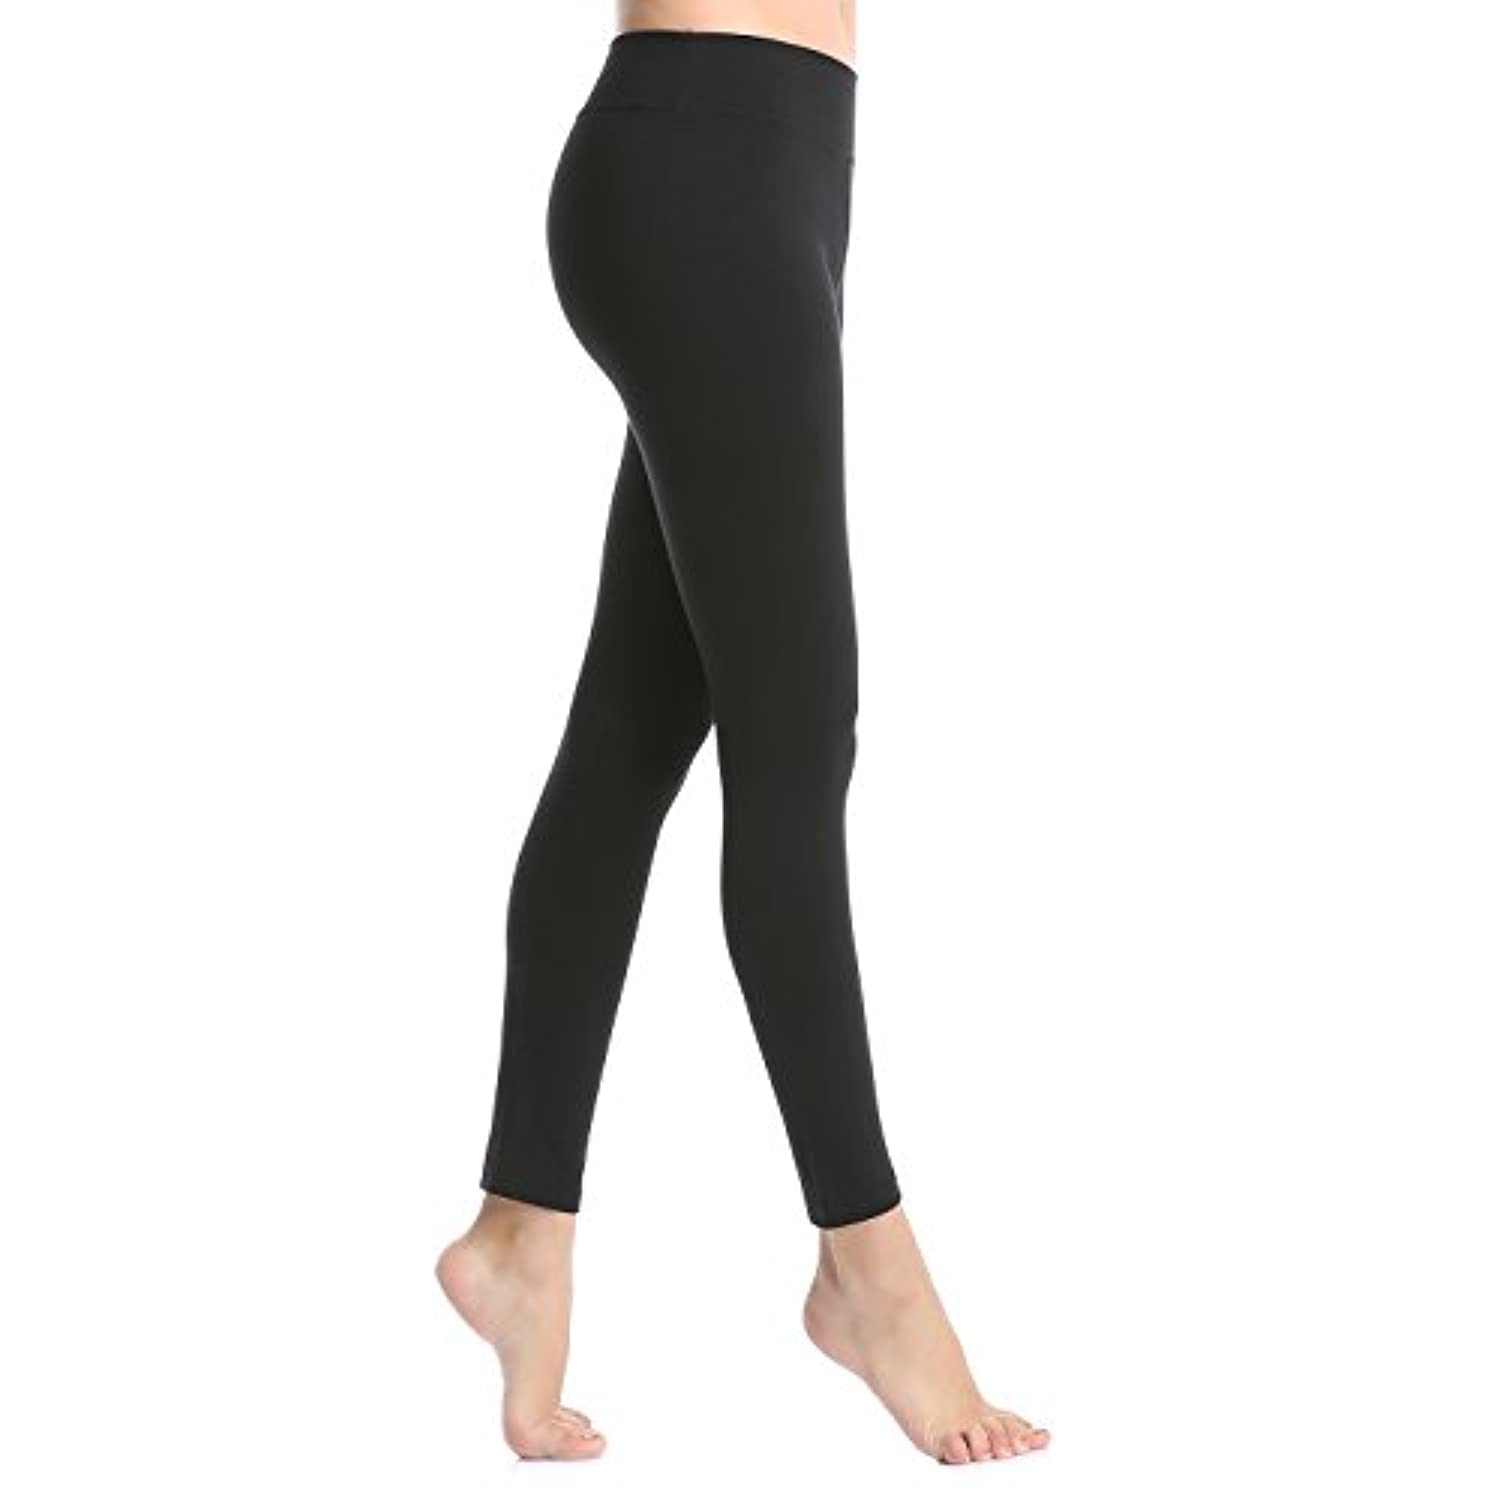 ABUSA Femme Yoga Legging Pantalon de Sport pour Fitness Gym